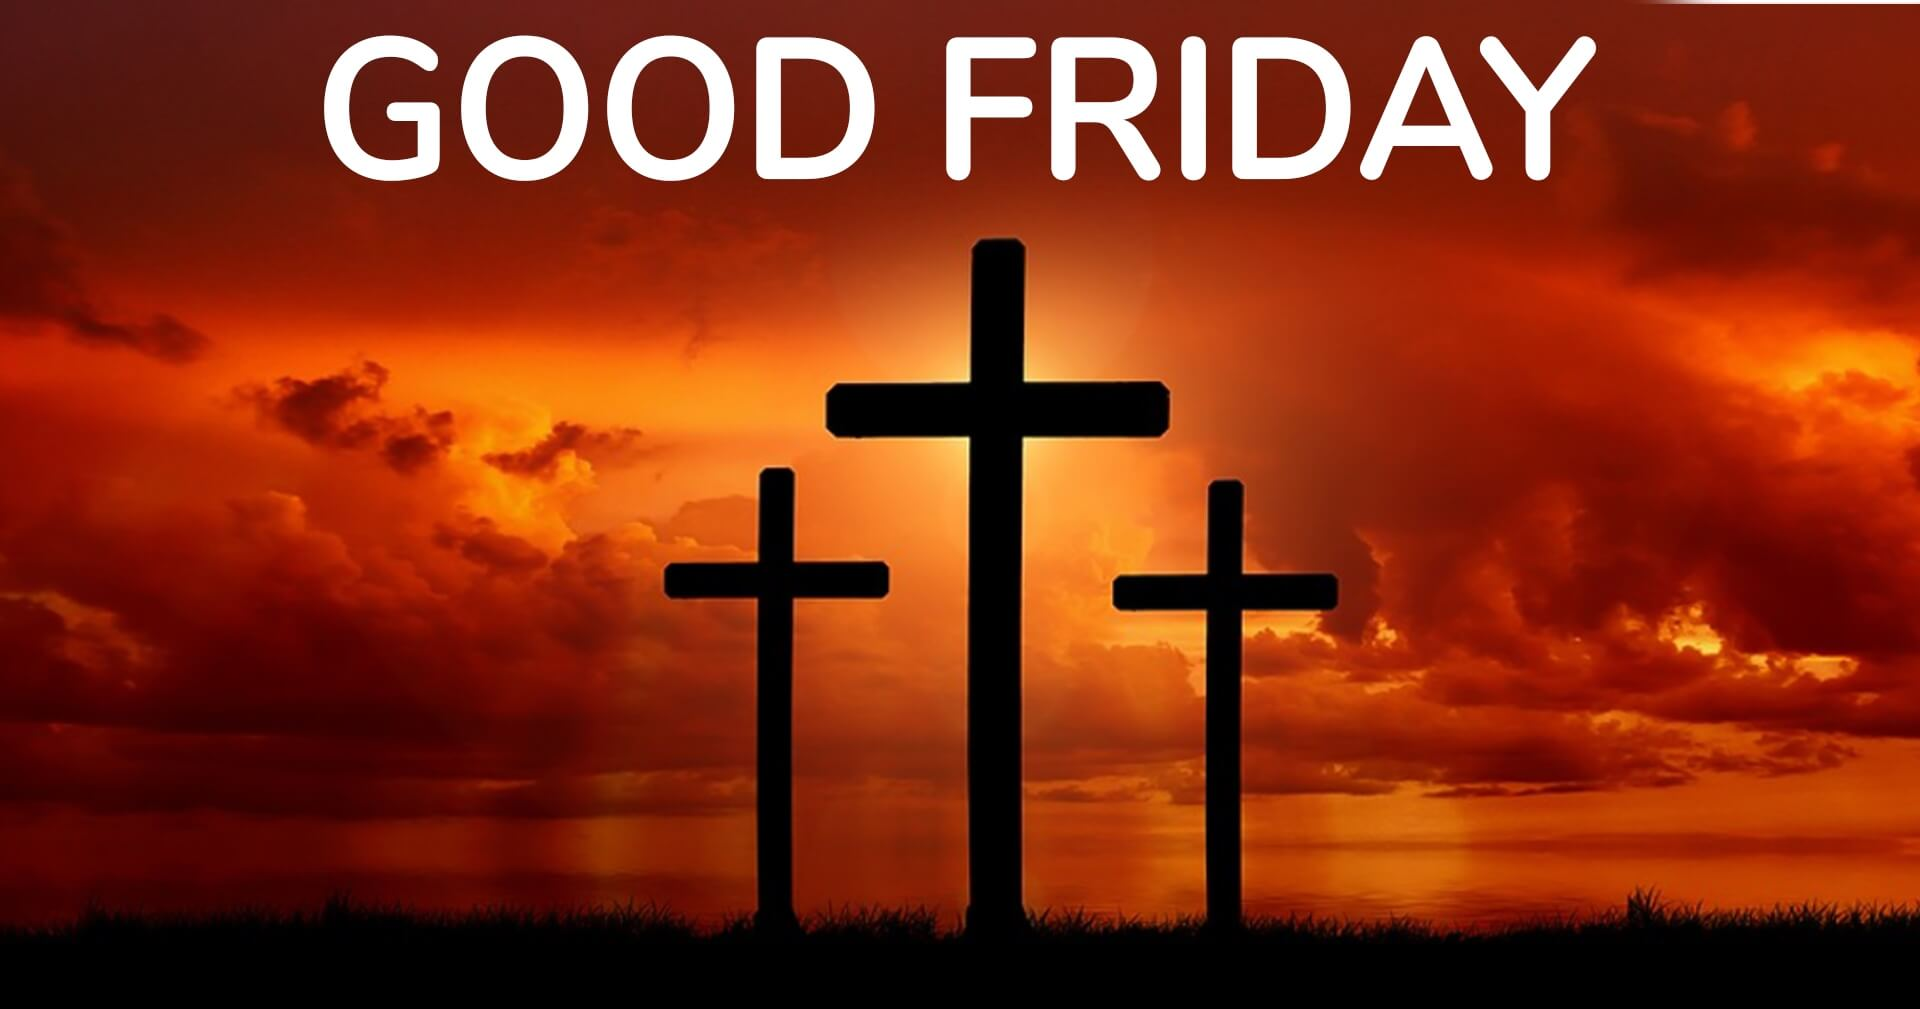 Religious Good Friday Images Free